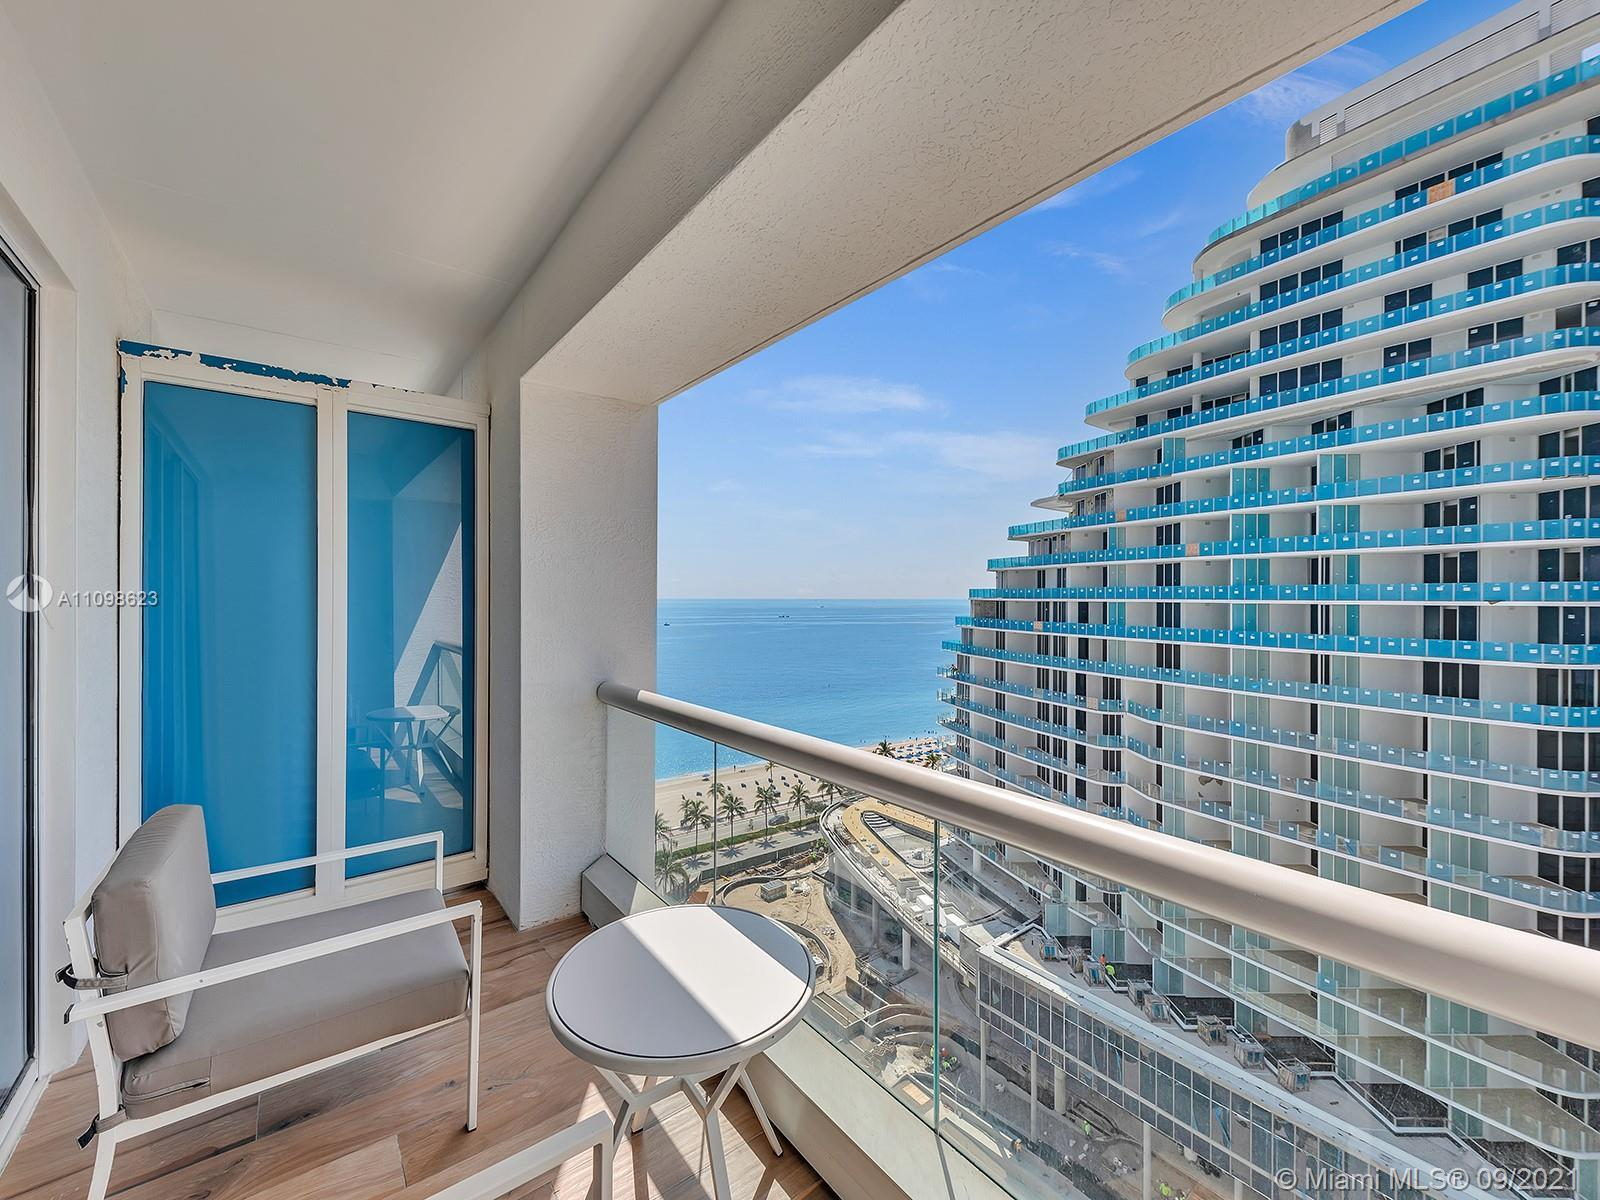 Enjoy the luxury Florida lifestyle at its finest at the 5 star Ocean Resort Residences on Fort Laude